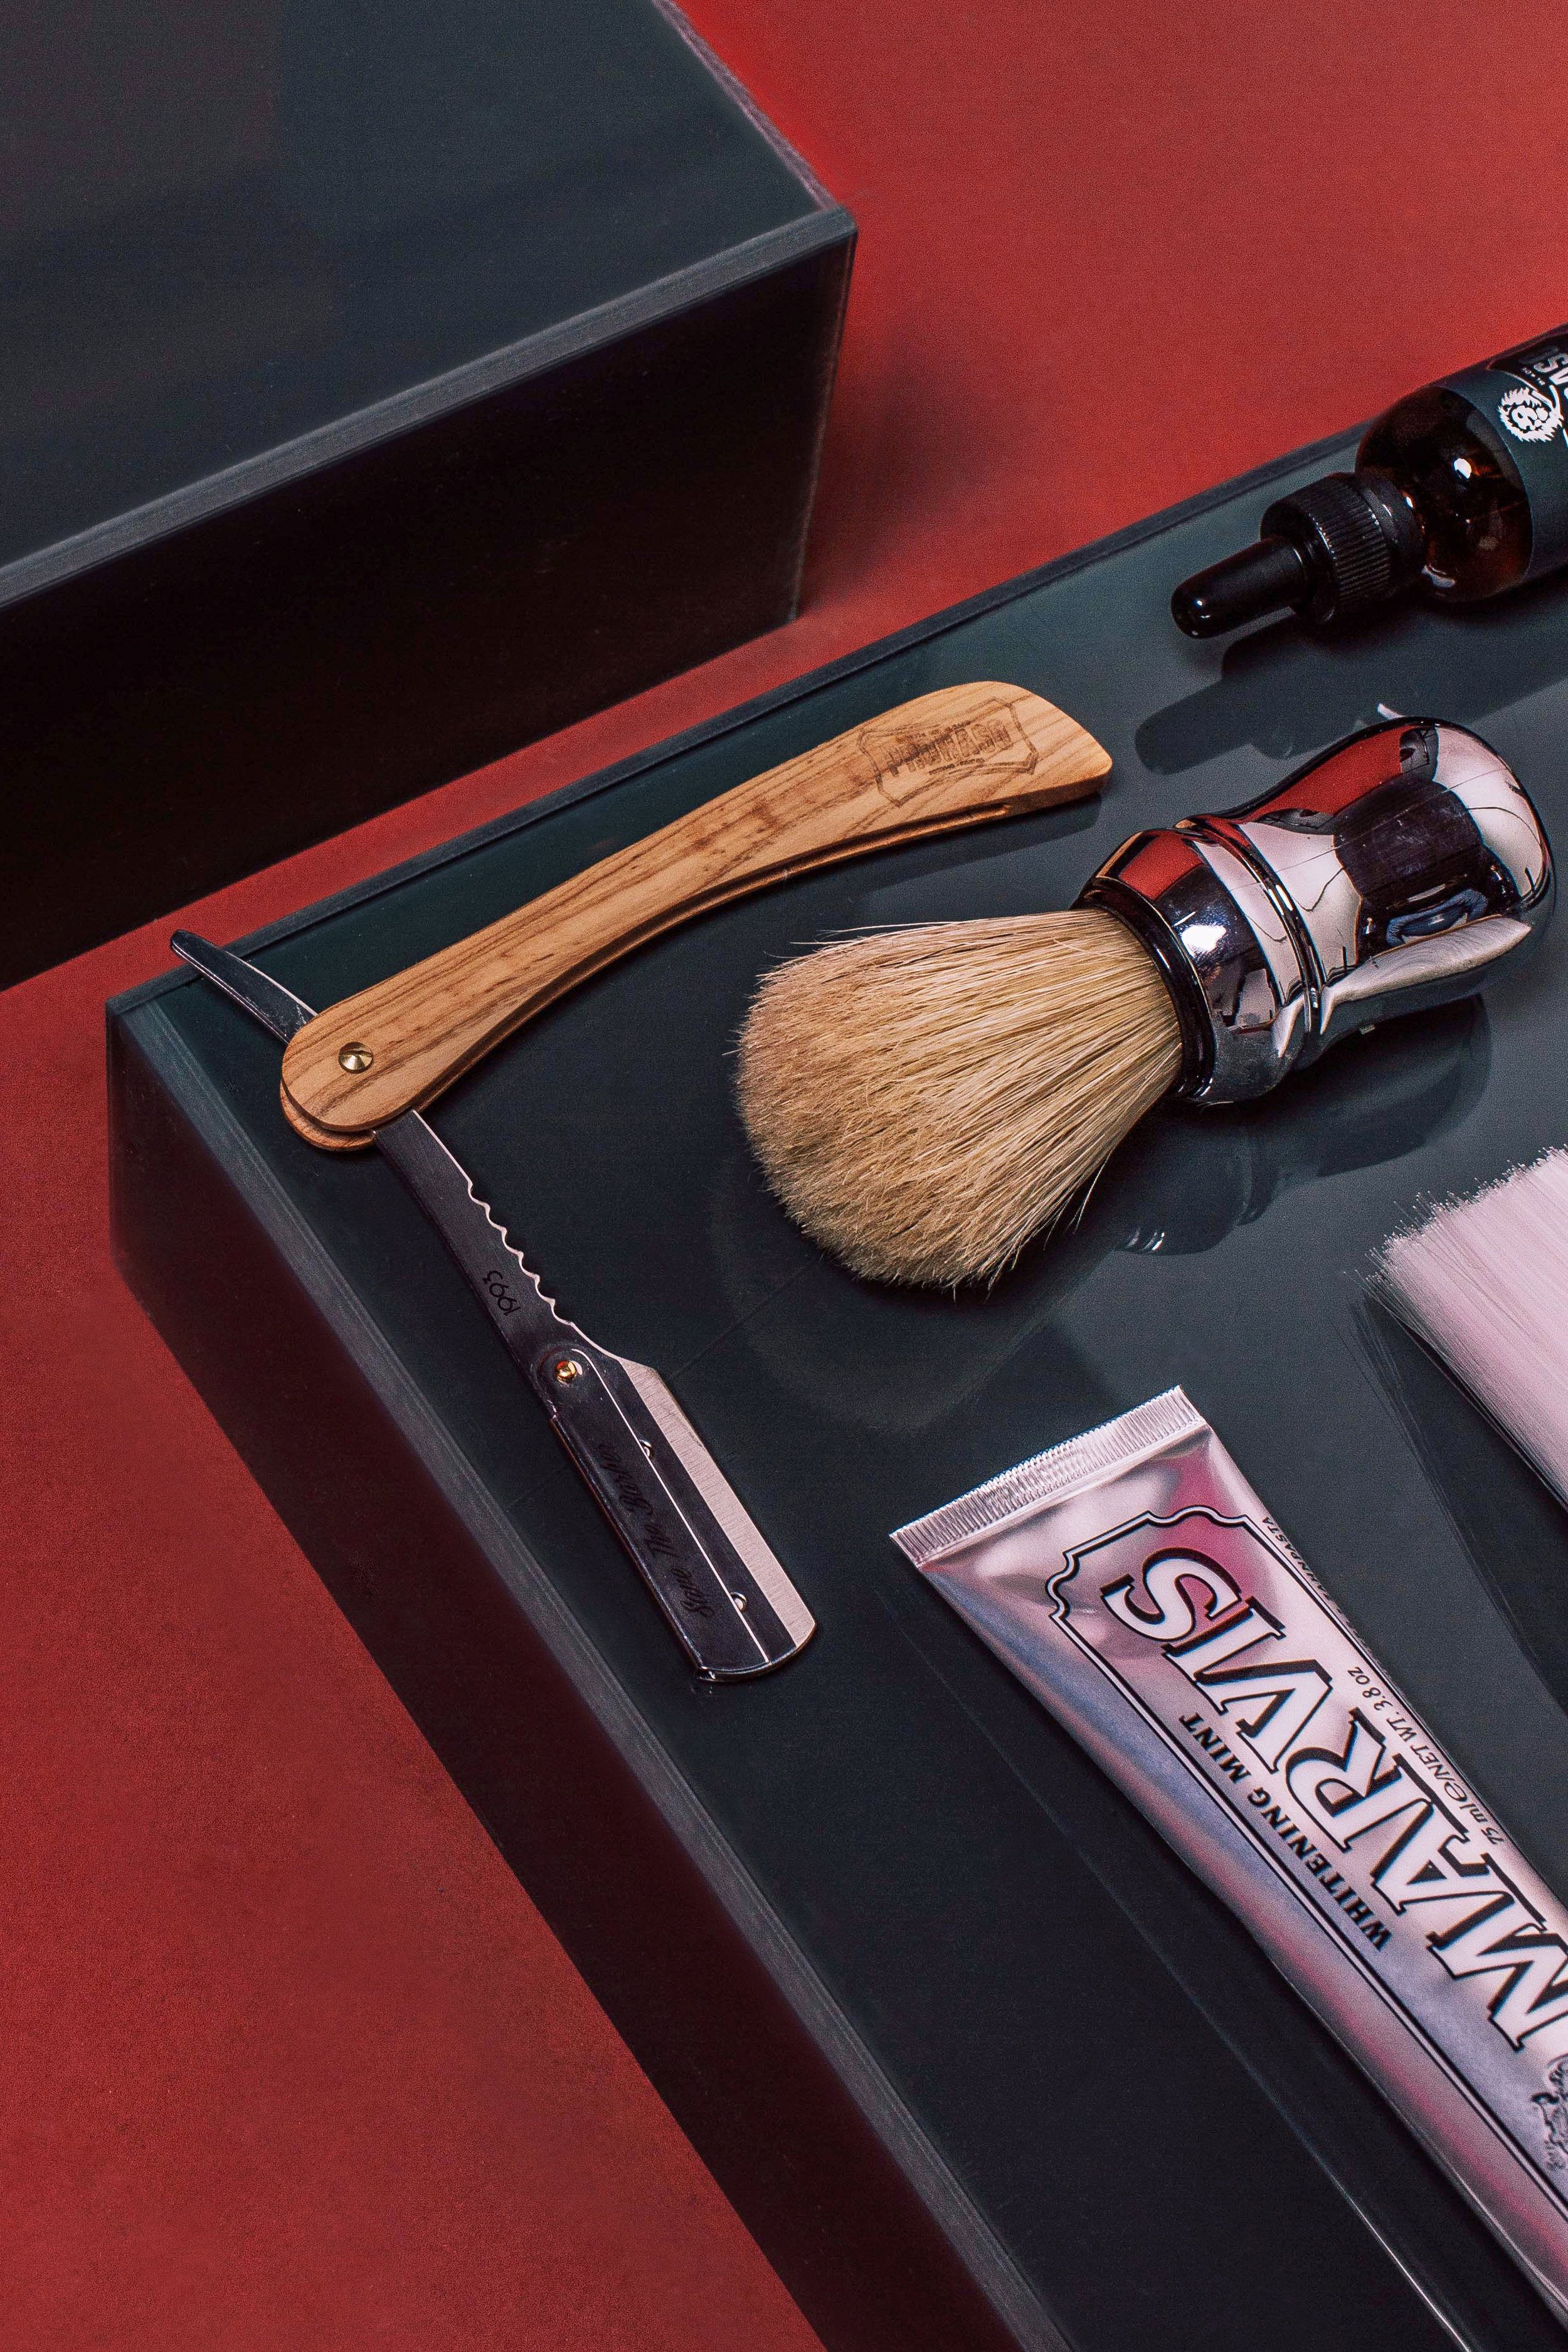 Featured: Marvis Black Toothbrush, Proraso Neck Brush, Marvis Toothpaste Whitening Mint, Save The Barber Razor Shaver, Proraso Pannello Shaver Brush, Proraso Protect Olio Cura Barba Beard Oil, Proraso Moustache Wax